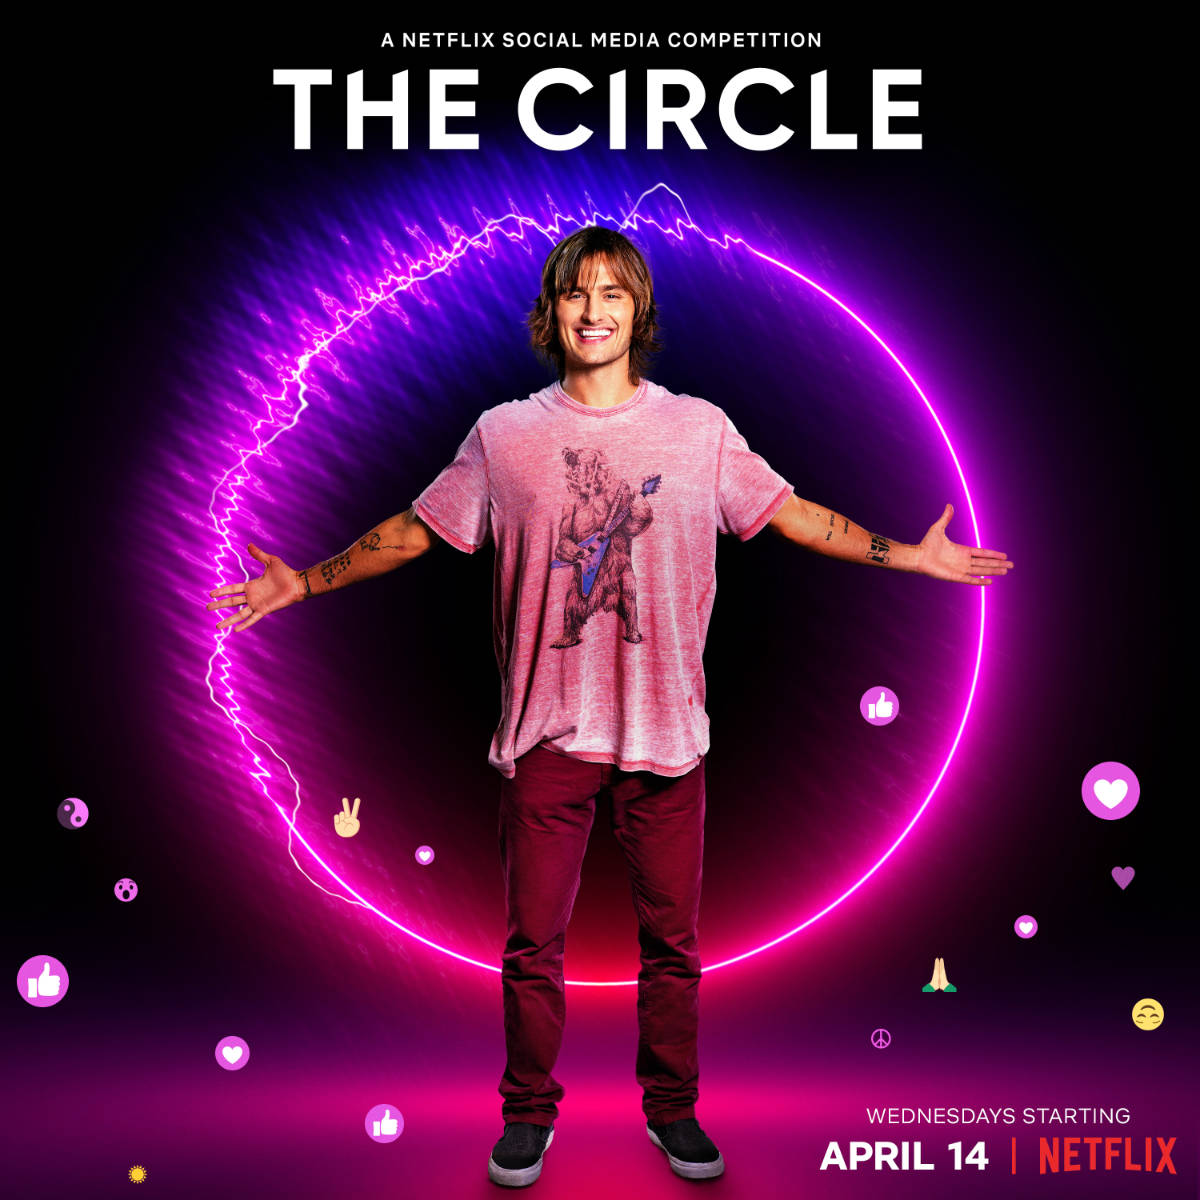 Netflix Reveals The Circle Season 2 and Selena: The Series Part 2